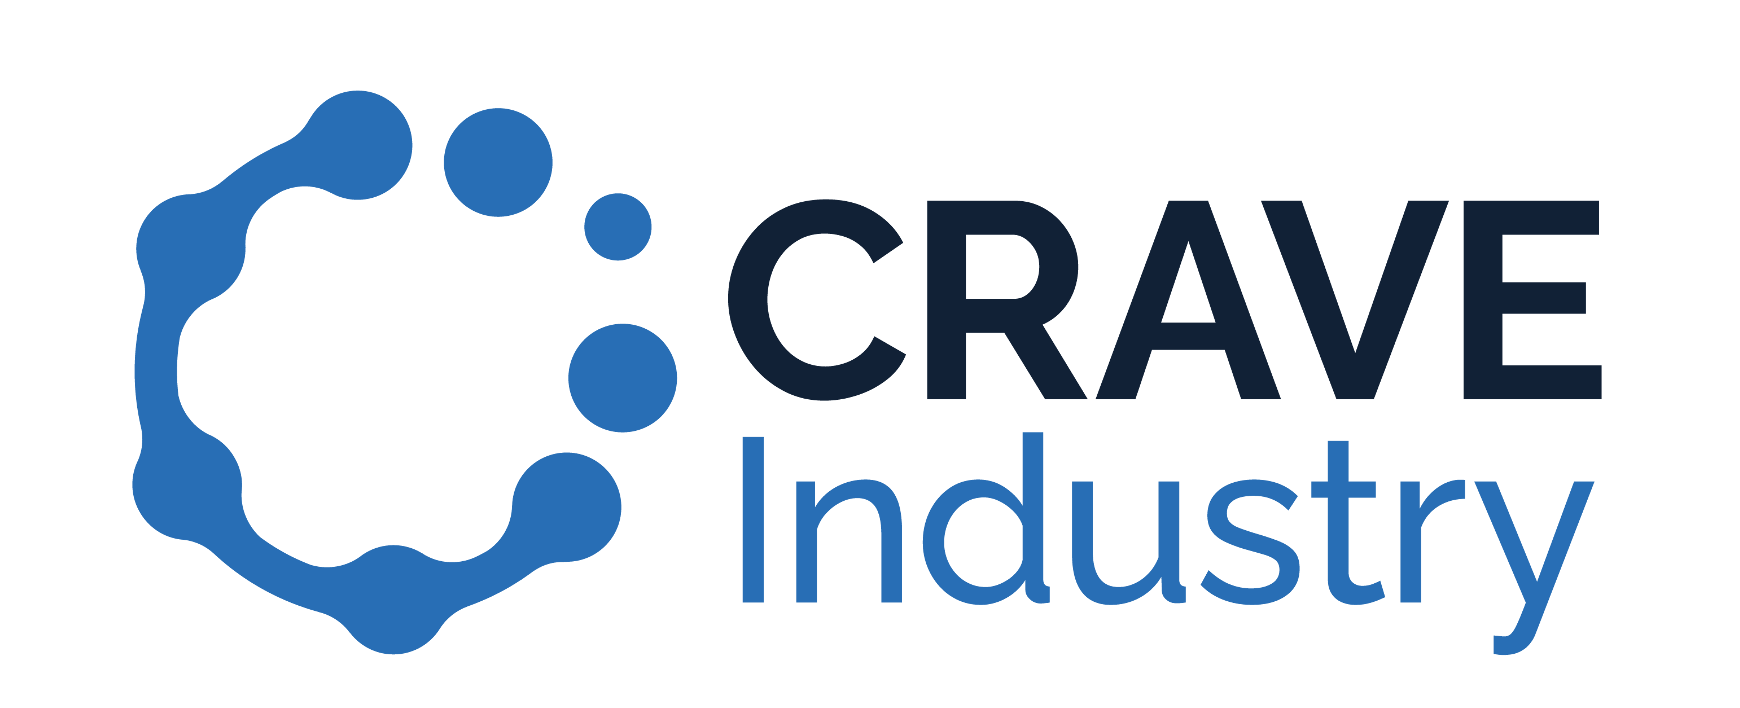 Crave Industry